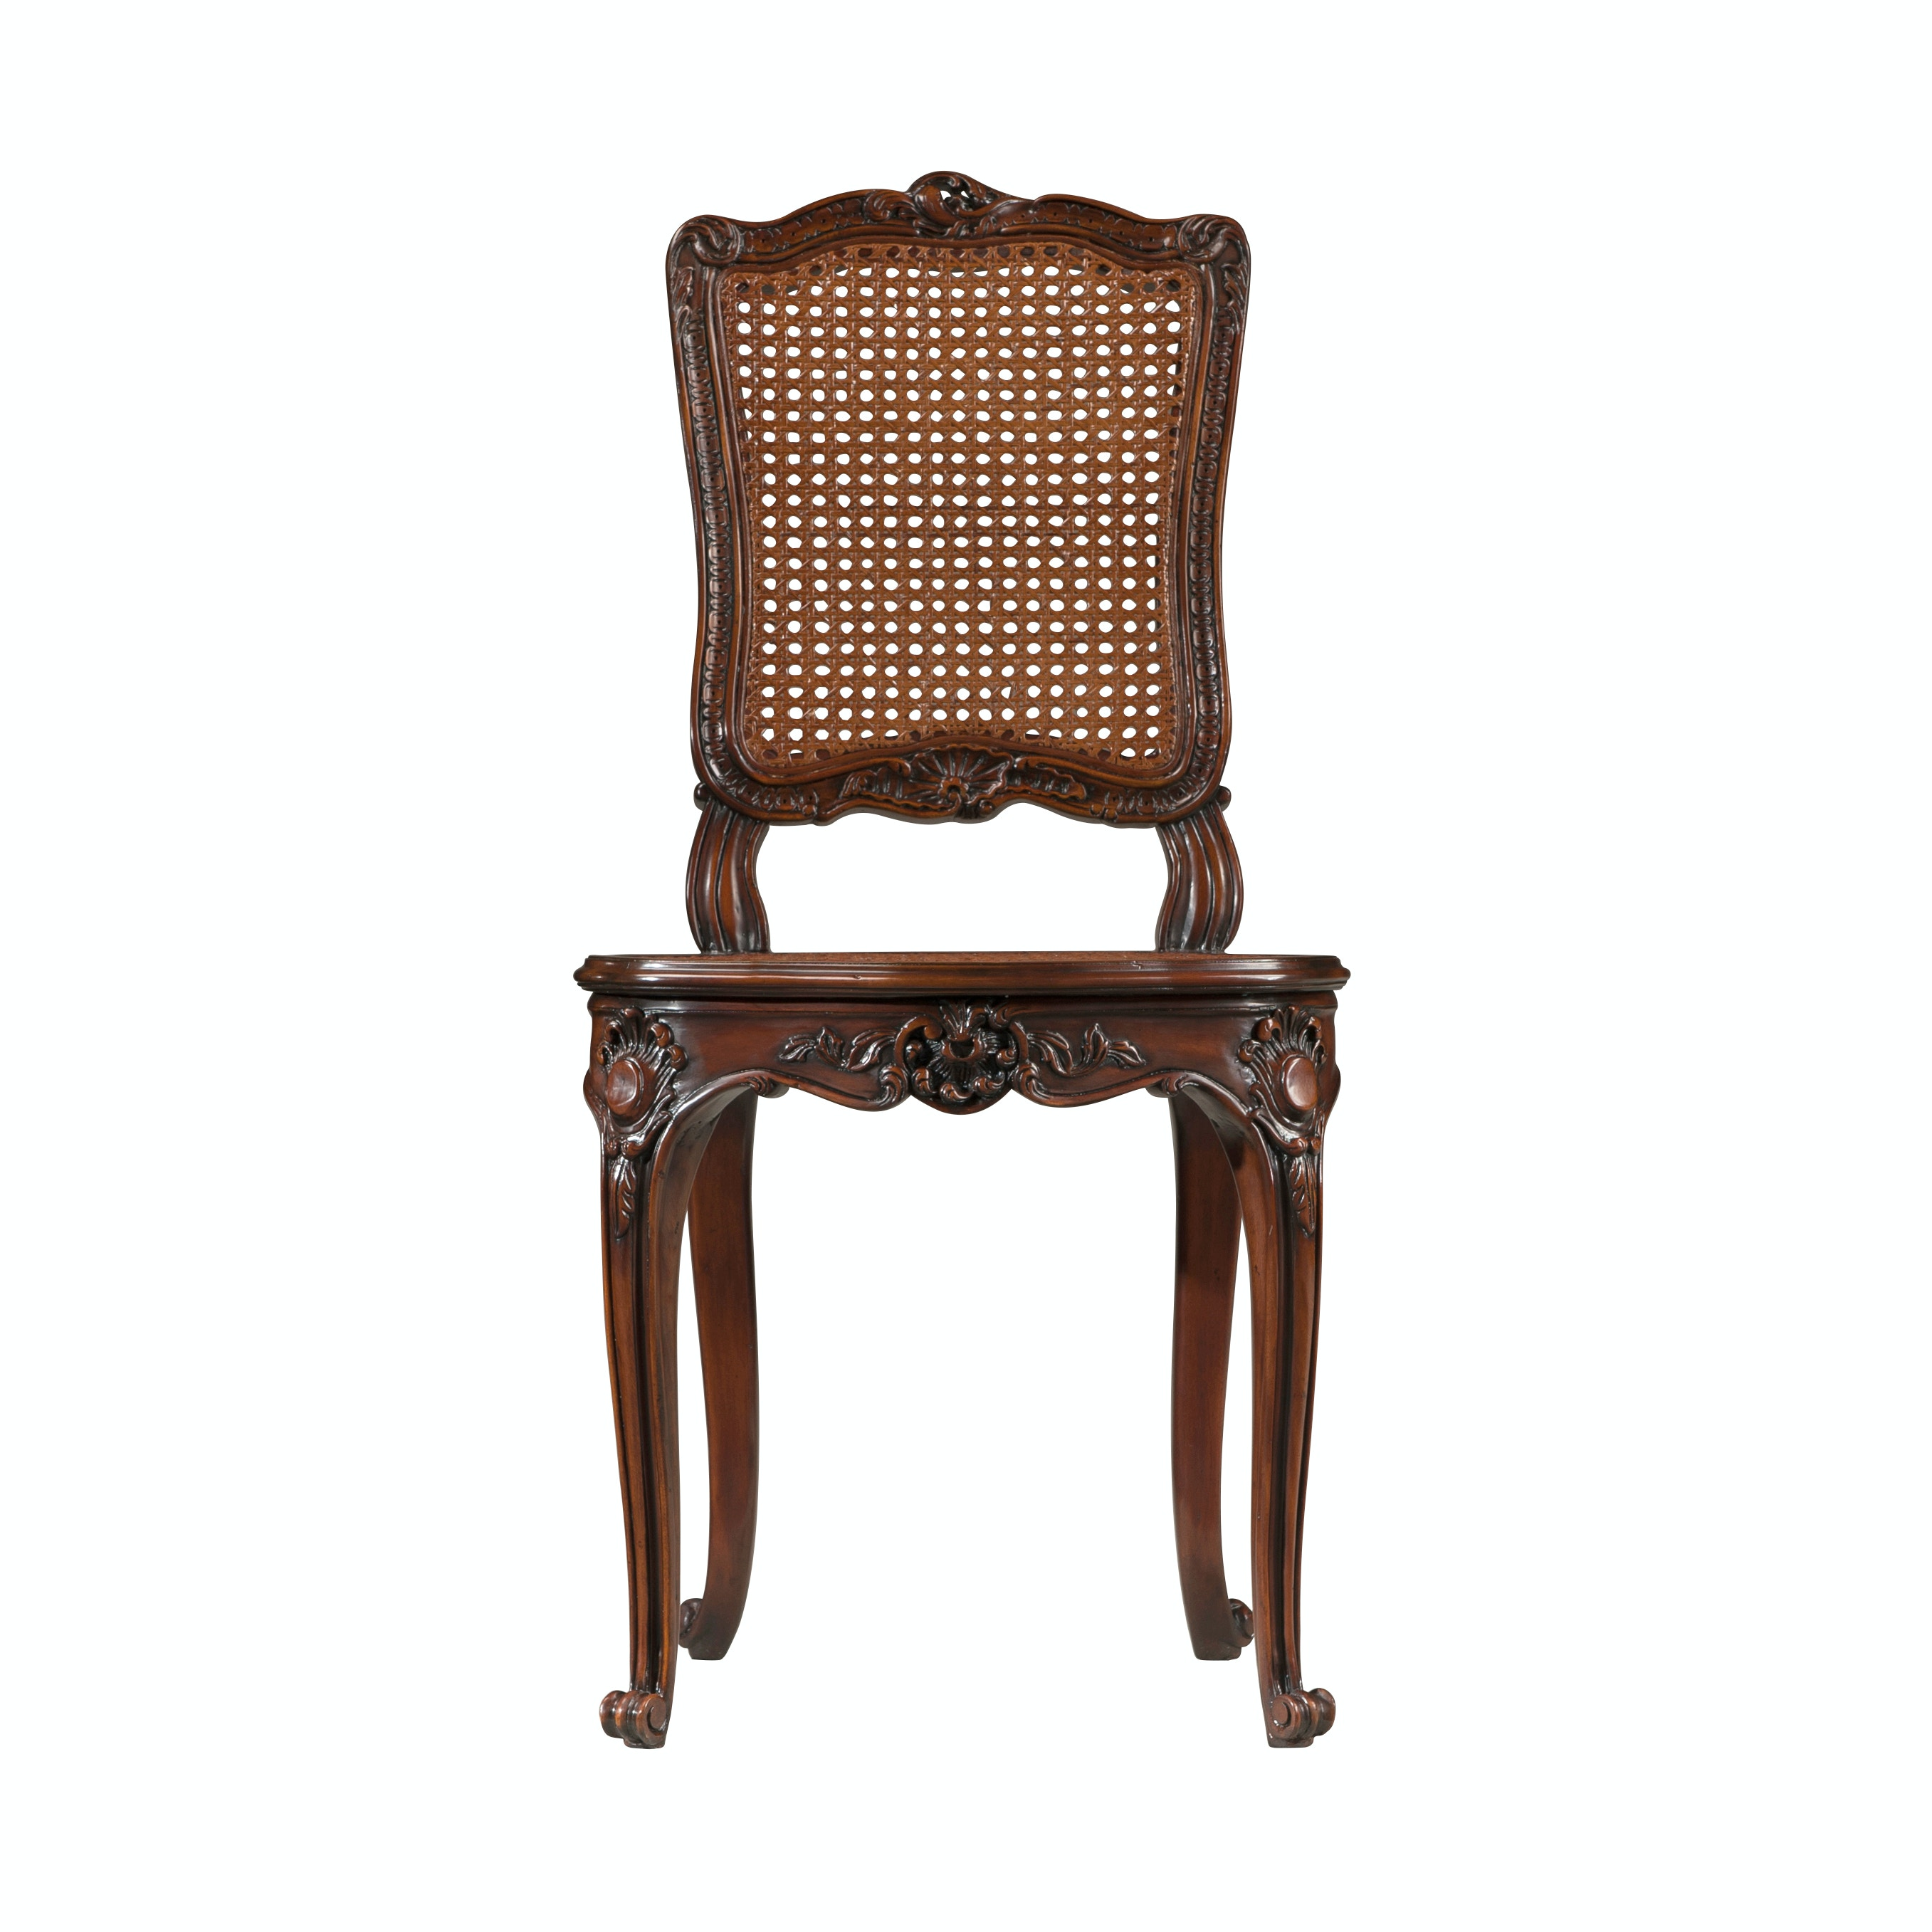 Charmant Theodore Alexander Furniture The Airy Chair Theodore Alexander 4000 050